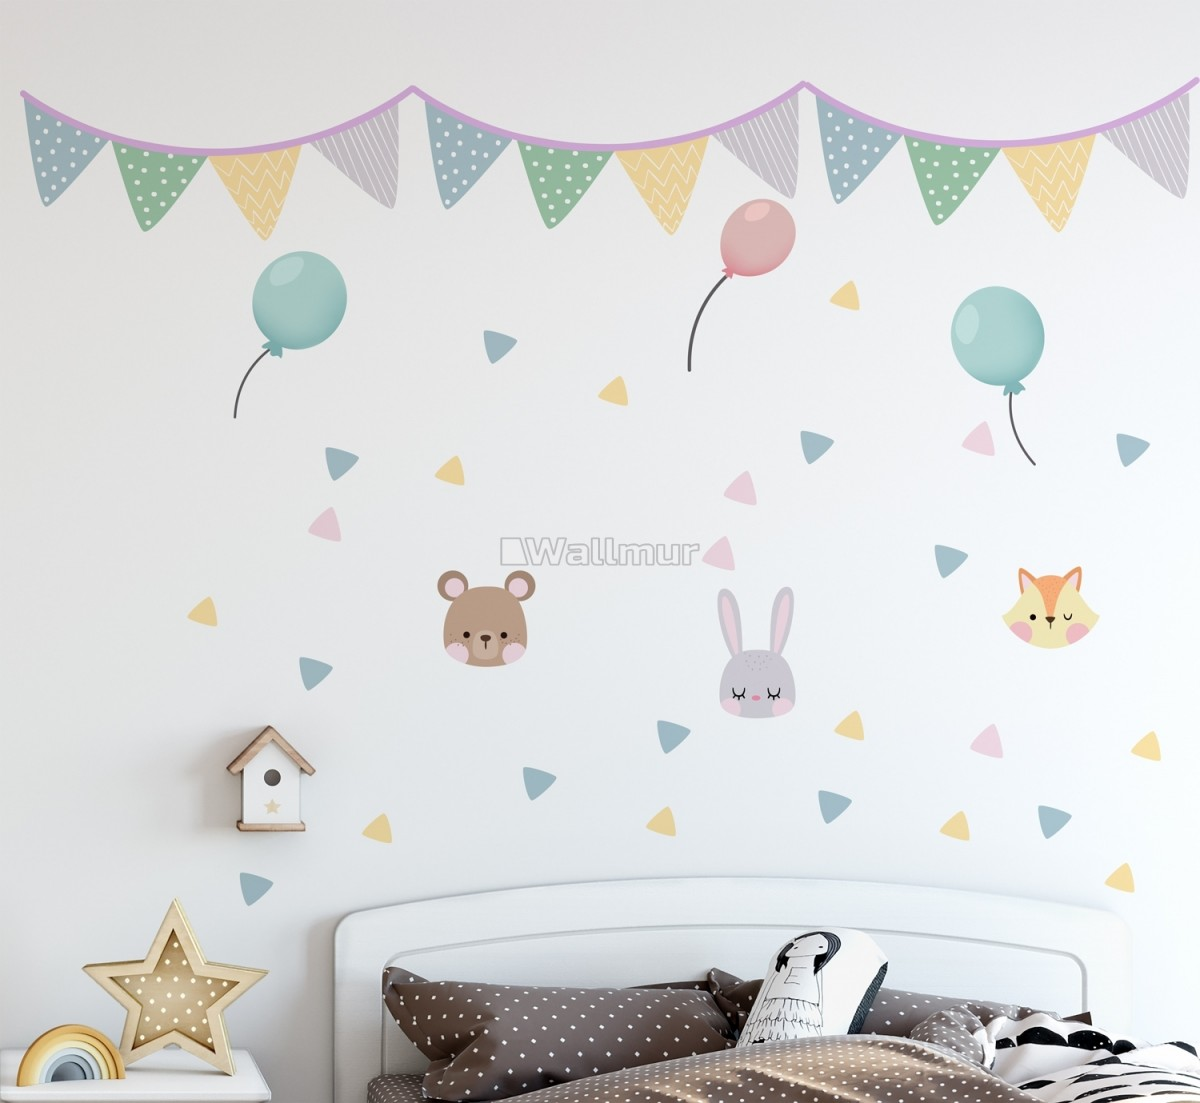 Nursery Cute Animals with Colorful Bunting and Triangle Flags Wall Decal Sticker